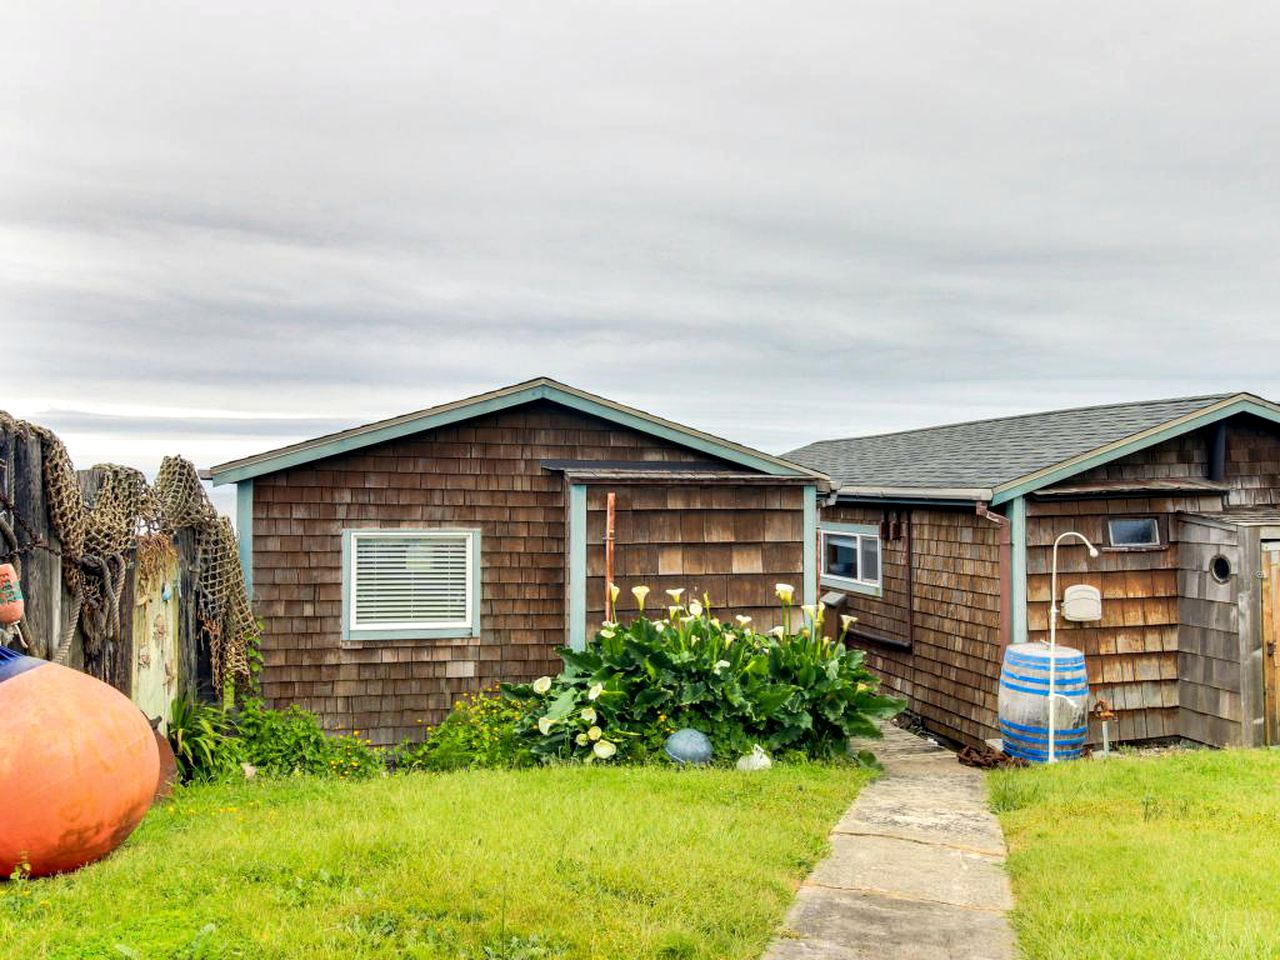 Cabins (Newport, Oregon, United States)